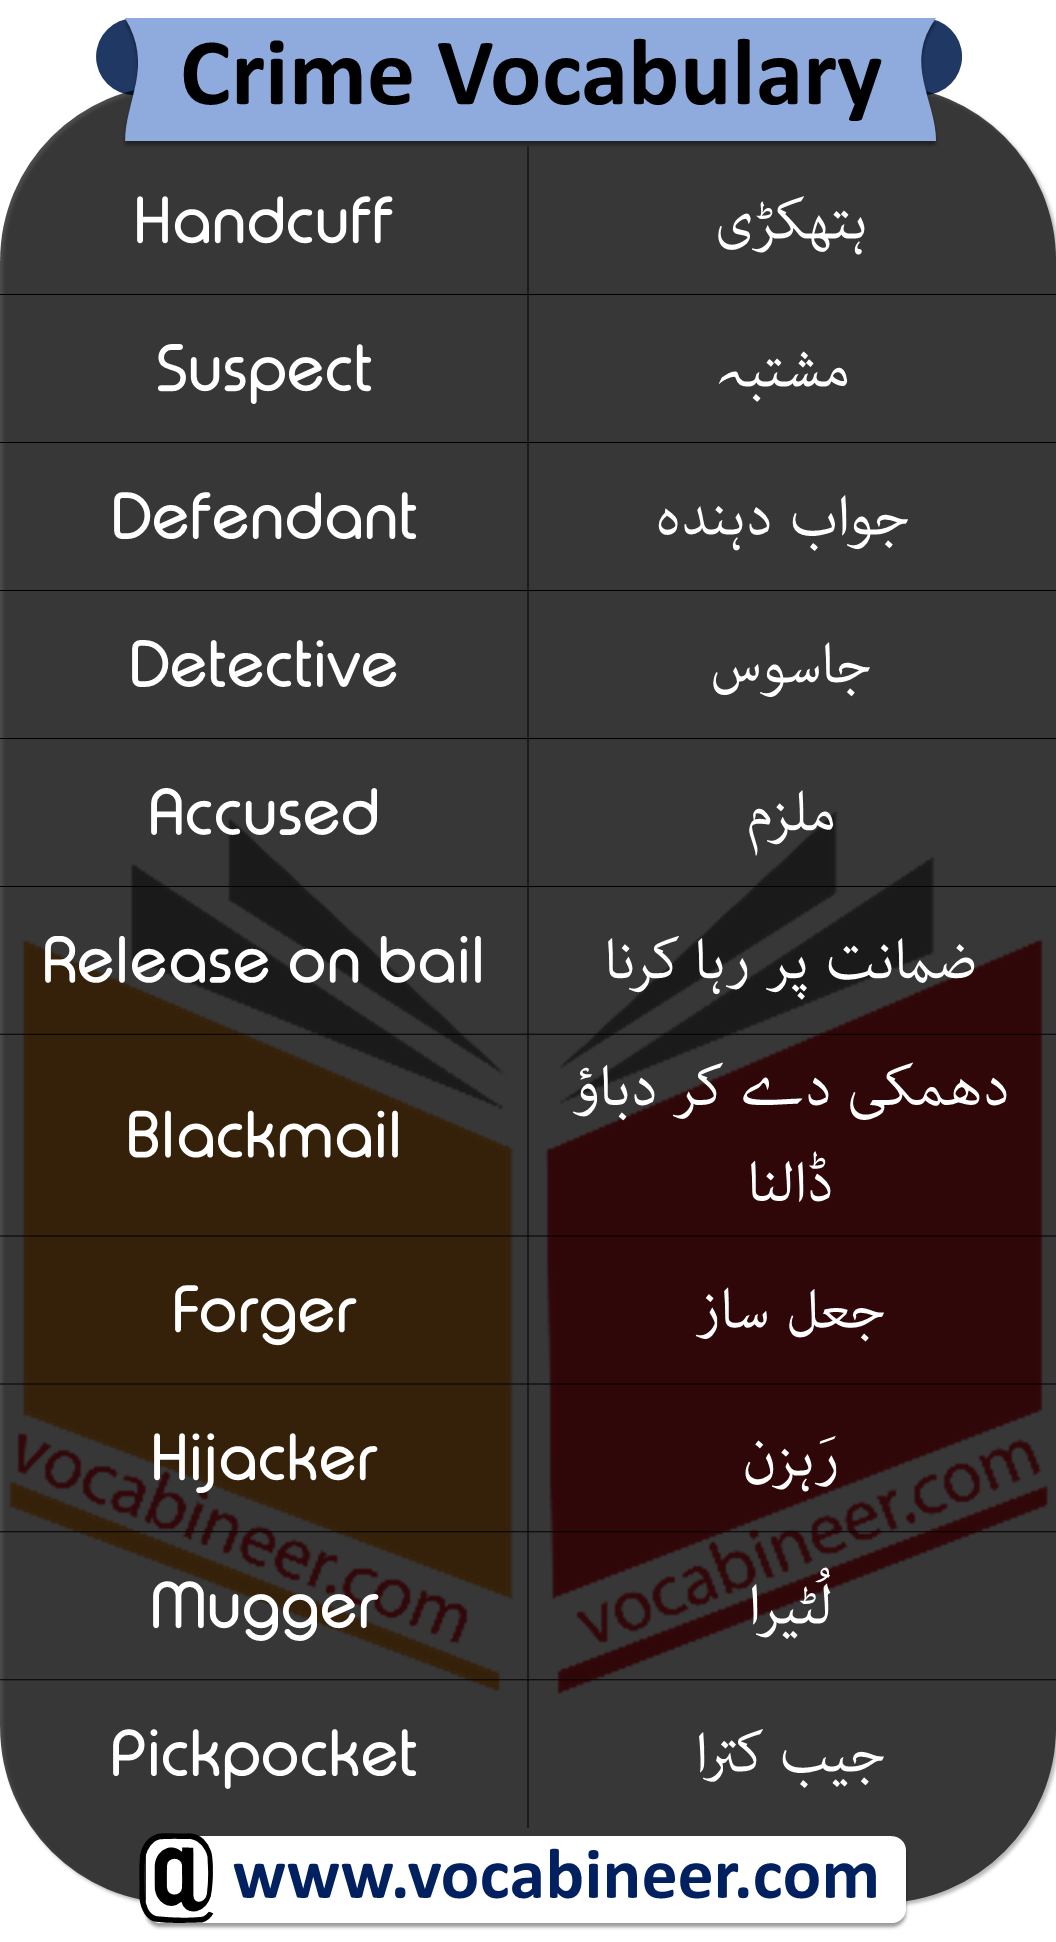 Crime Vocabulary which can help you prepare IELTS and other language tests with their Urdu and Hindi meanings.